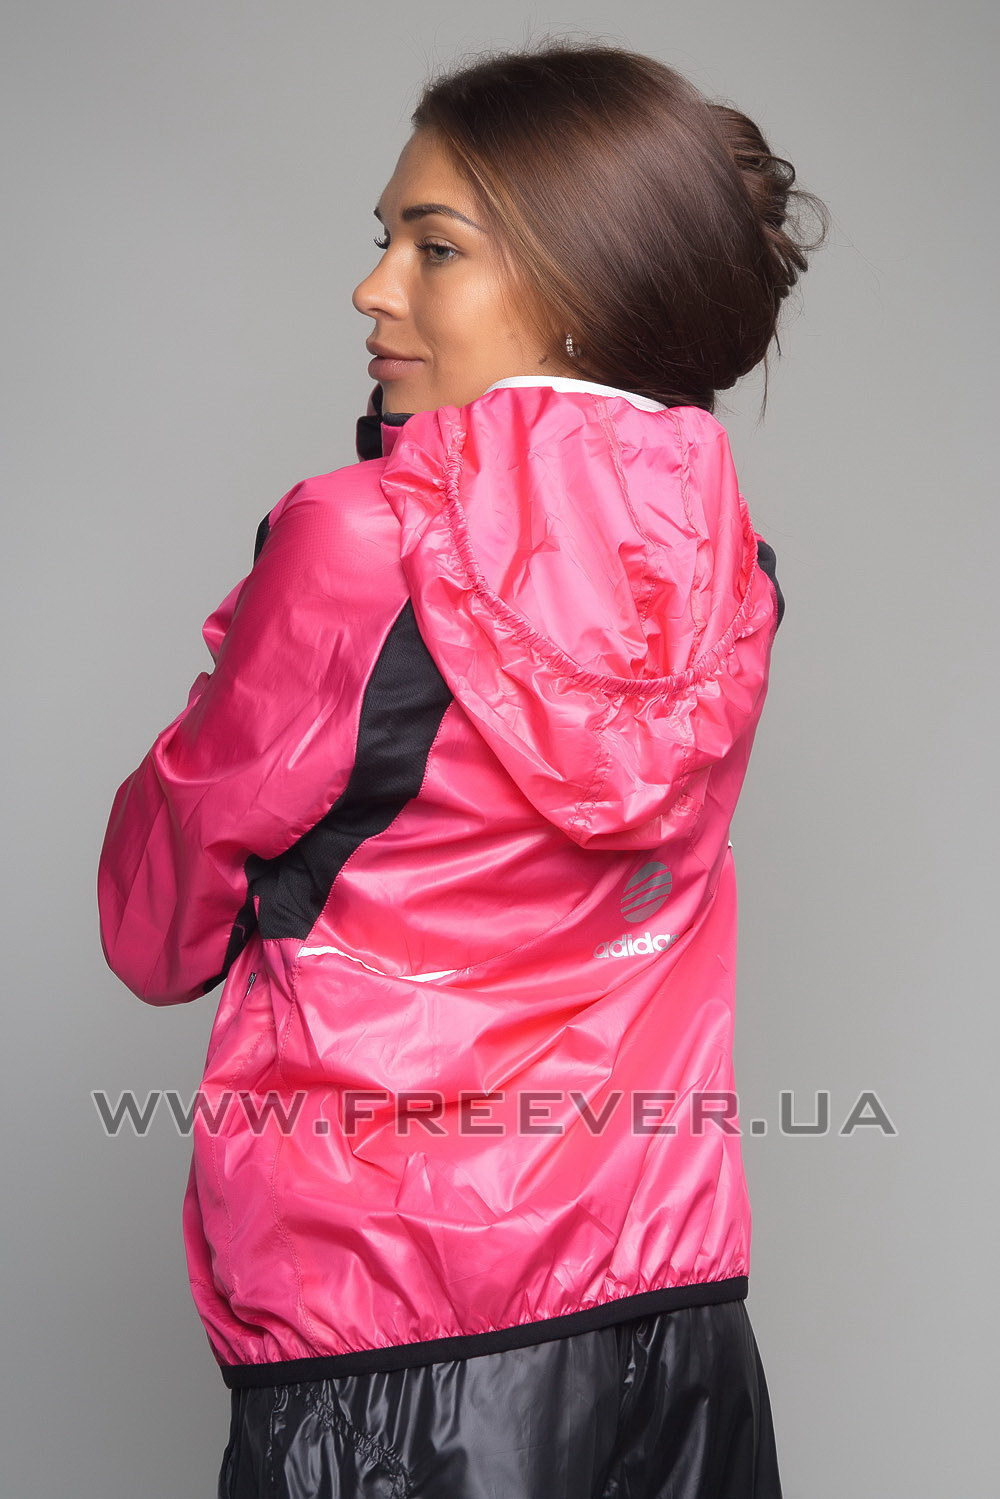 Women's Black and Pink Shiny Adidas Tracksuit